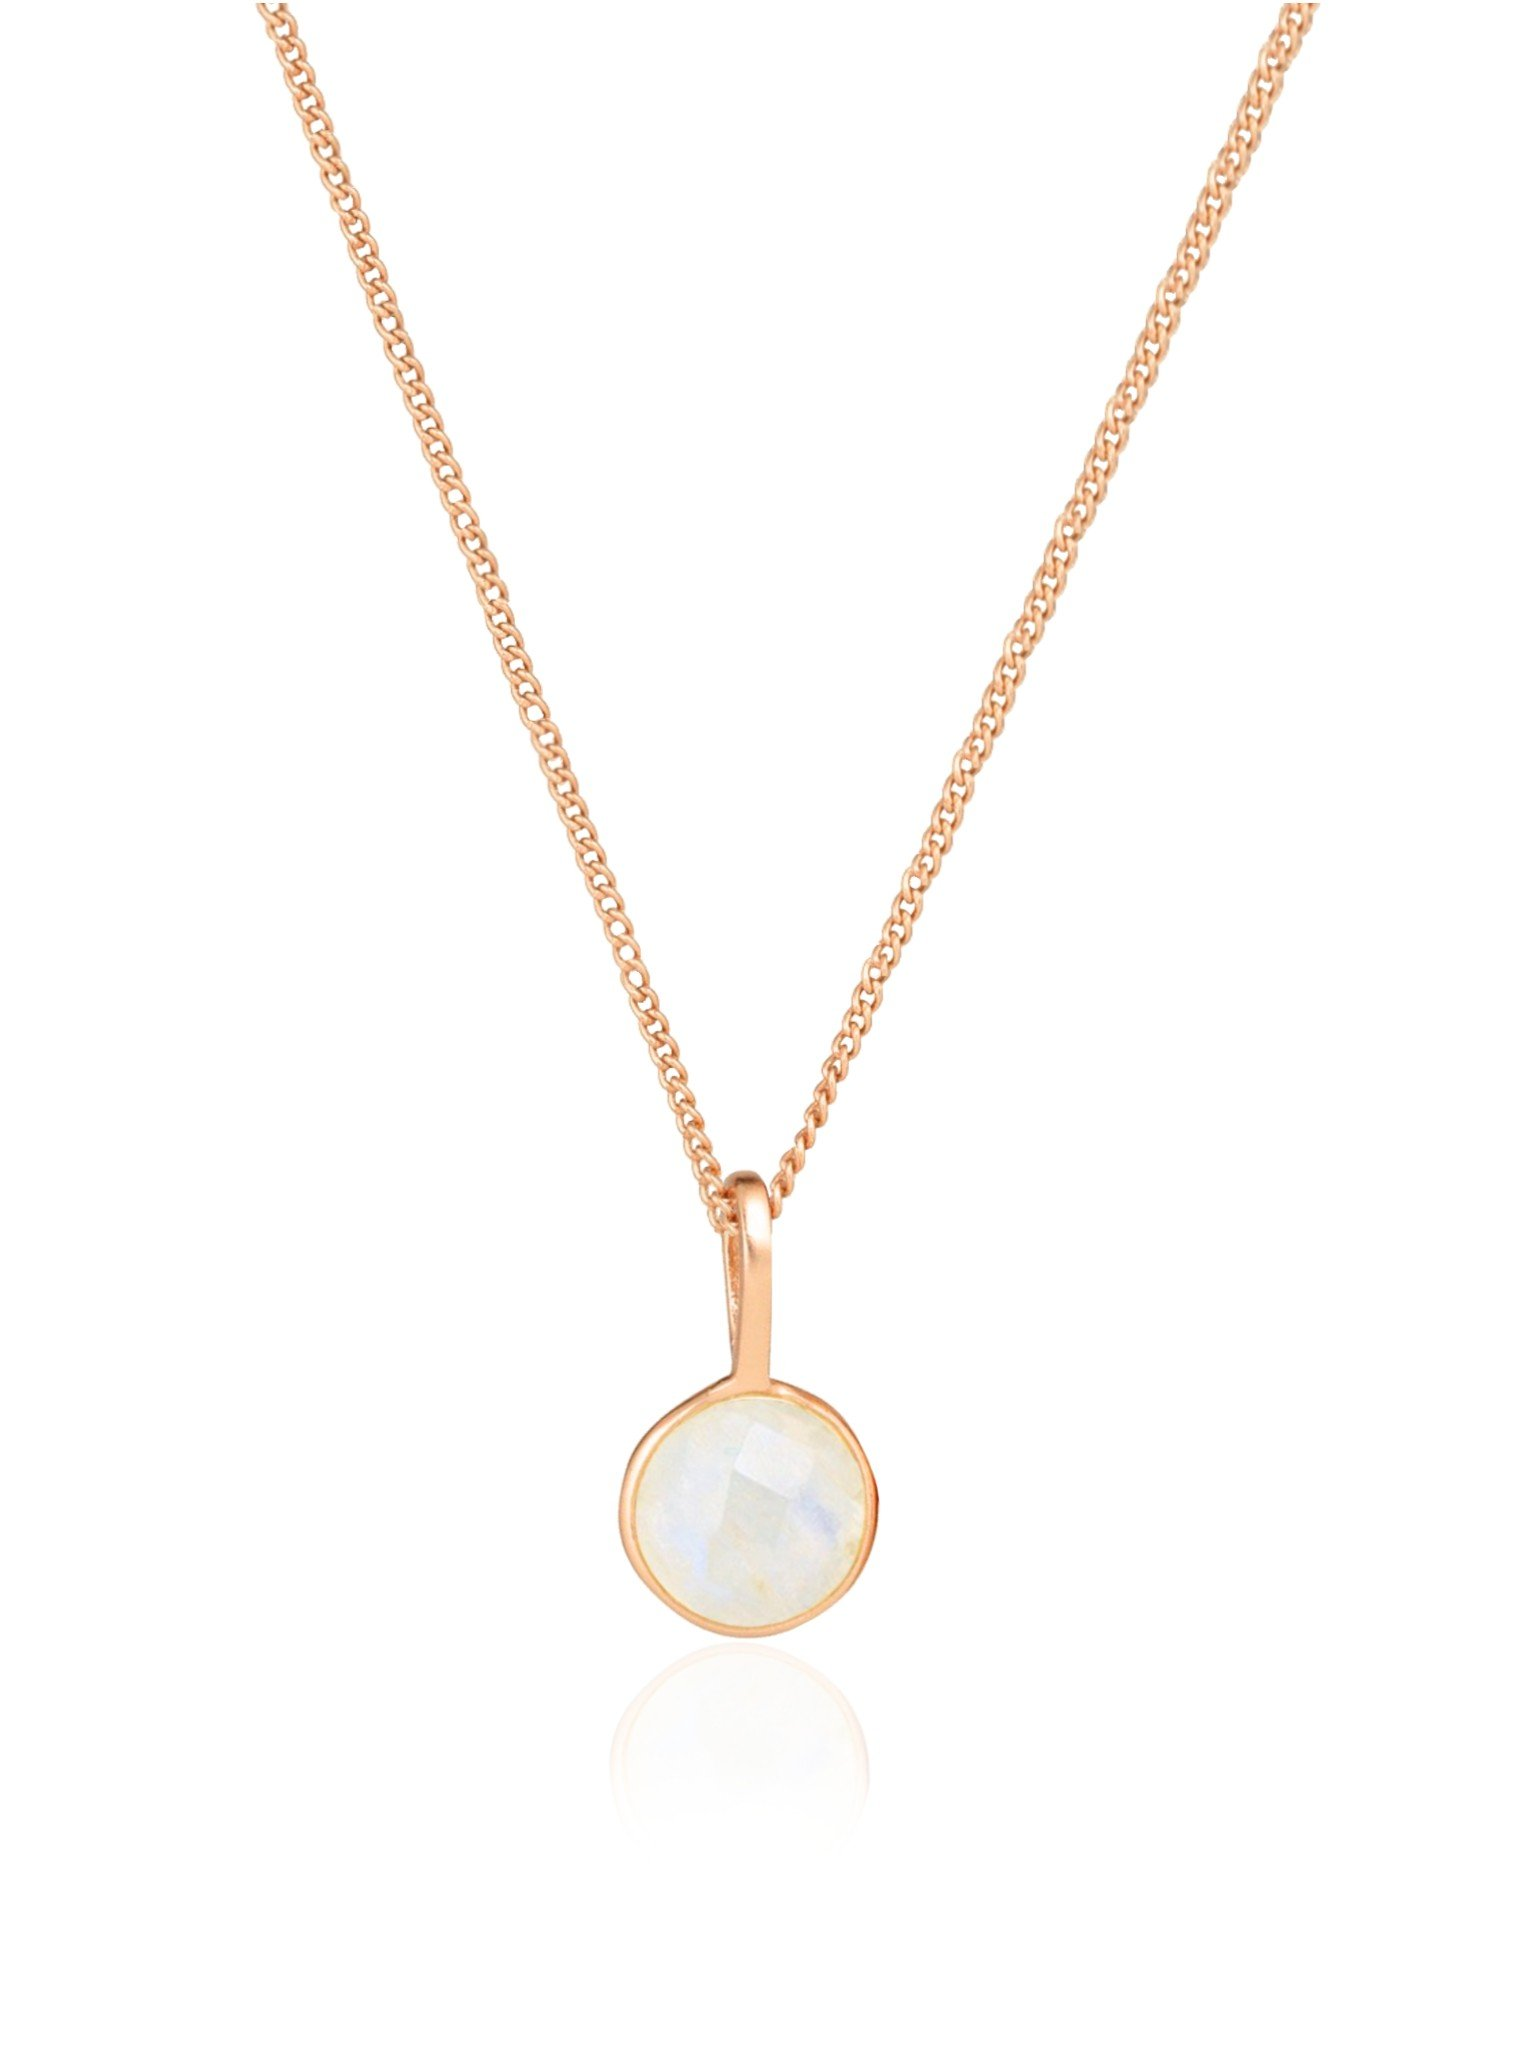 Selene Single Pendant Moonstone Necklace in Rose Gold